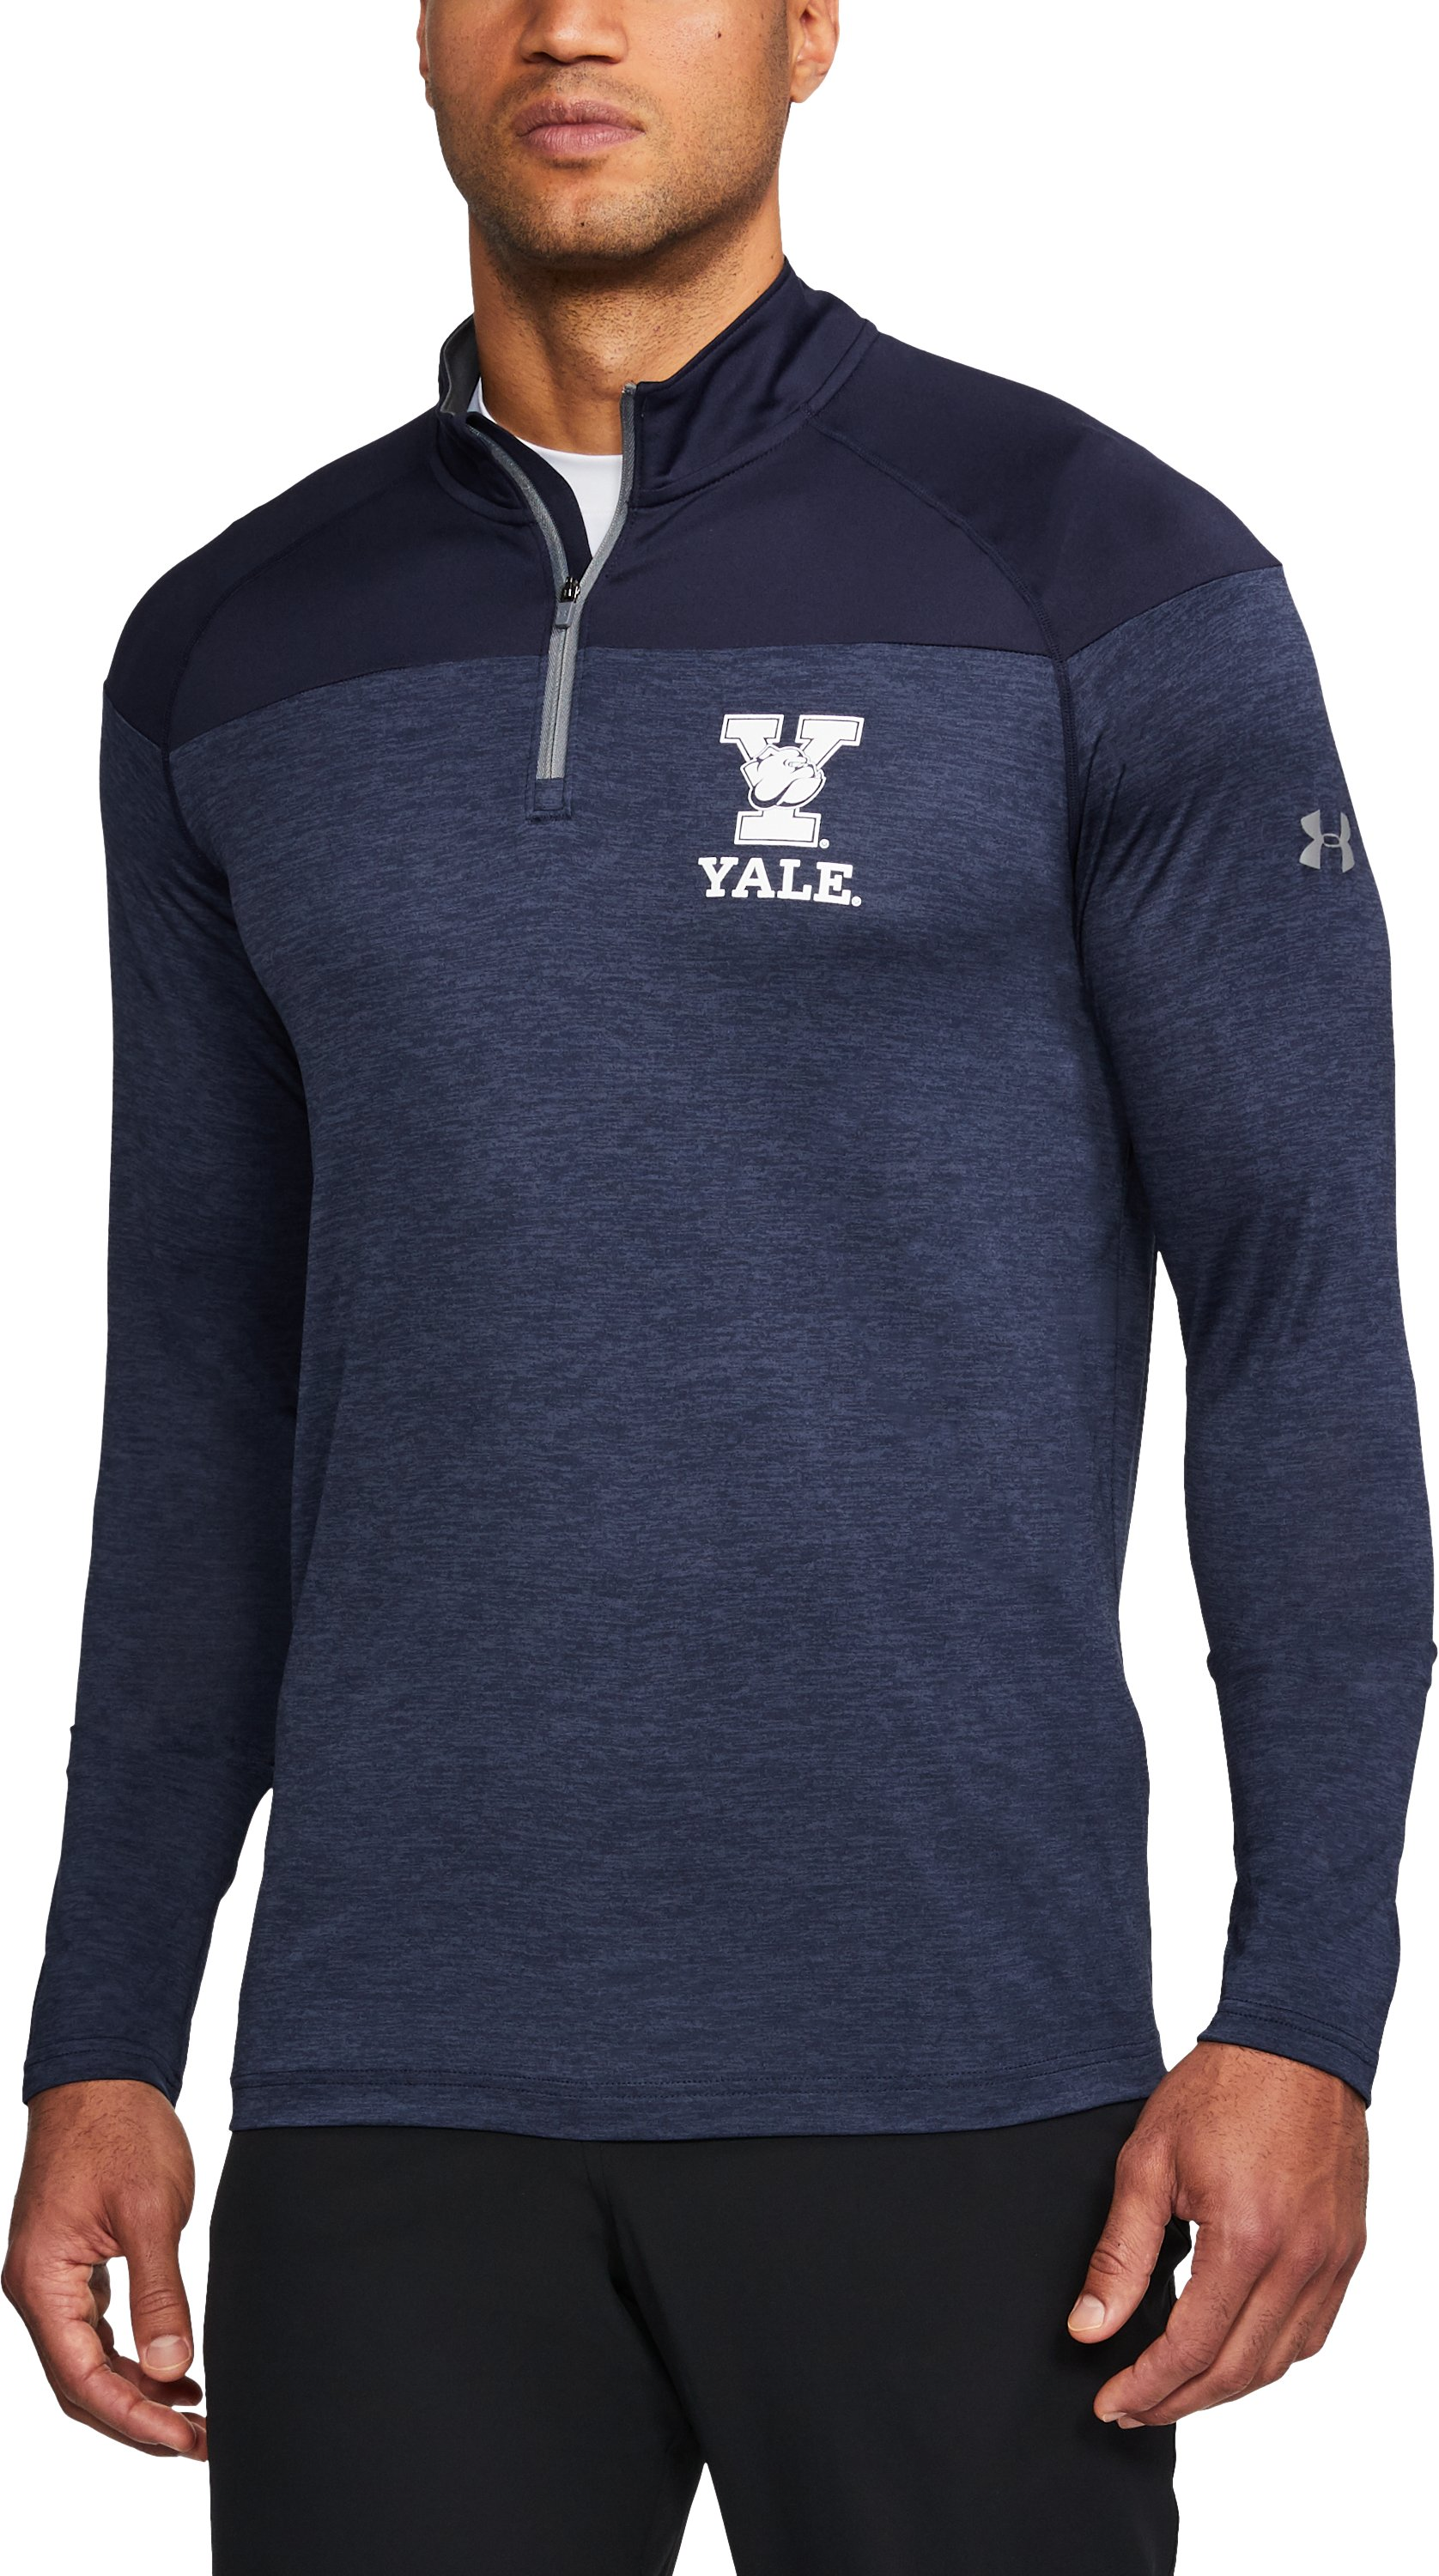 Men's Yale Printed ¼ Zip, Midnight Navy